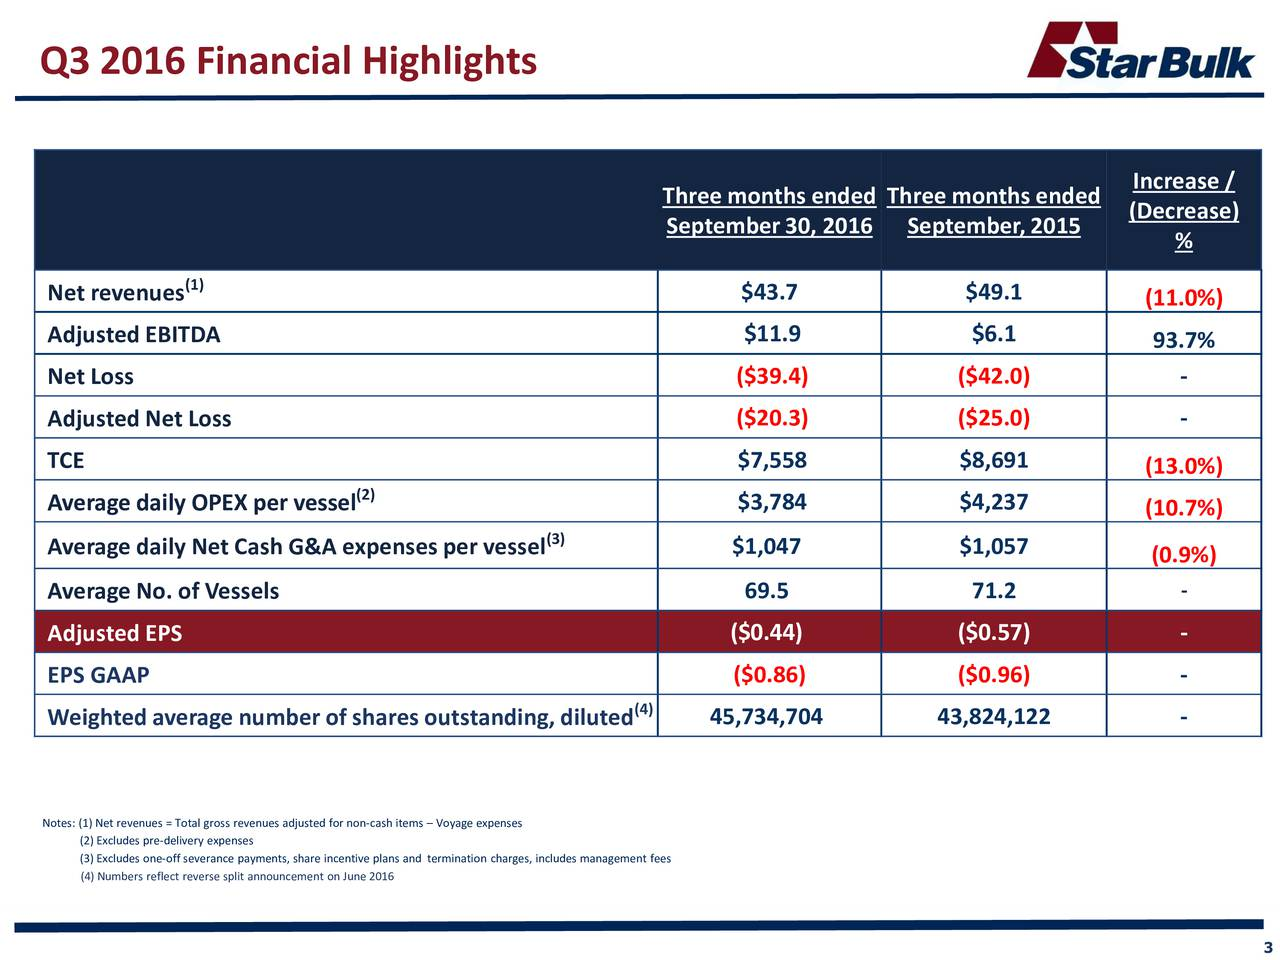 Increase / Threemonths ended Threemonths ended (Decrease) September30, 2016 September,2015 % (1) Net revenues $43.7 $49.1 (11.0%) AdjustedEBITDA $11.9 $6.1 93.7% Net Loss ($39.4) ($42.0) - AdjustedNet Loss ($20.3) ($25.0) - TCE $7,558 $8,691 (13.0%) (2) Average daily OPEX per vessel $3,784 $4,237 (10.7%) (3) Average daily Net Cash G&A expensesper vessel $1,047 $1,057 (0.9%) - Average No. of Vessels 69.5 71.2 Adjusted EPS ($0.44) ($0.57) - EPS GAAP ($0.86) ($0.96) - Weightedaverage number of shares outstanding, diluted (4) 45,734,704 43,824,122 - Notes: (1) Net revenues = Total gross revenues adjusted for non-cash items  Voyage expenses (2) Excludes pre-delivery expenses (3) Excludes one-off severance payments, share incentive plans and termination charges, includes management fees (4) Numbers reflect reverse split announcement on June 2016